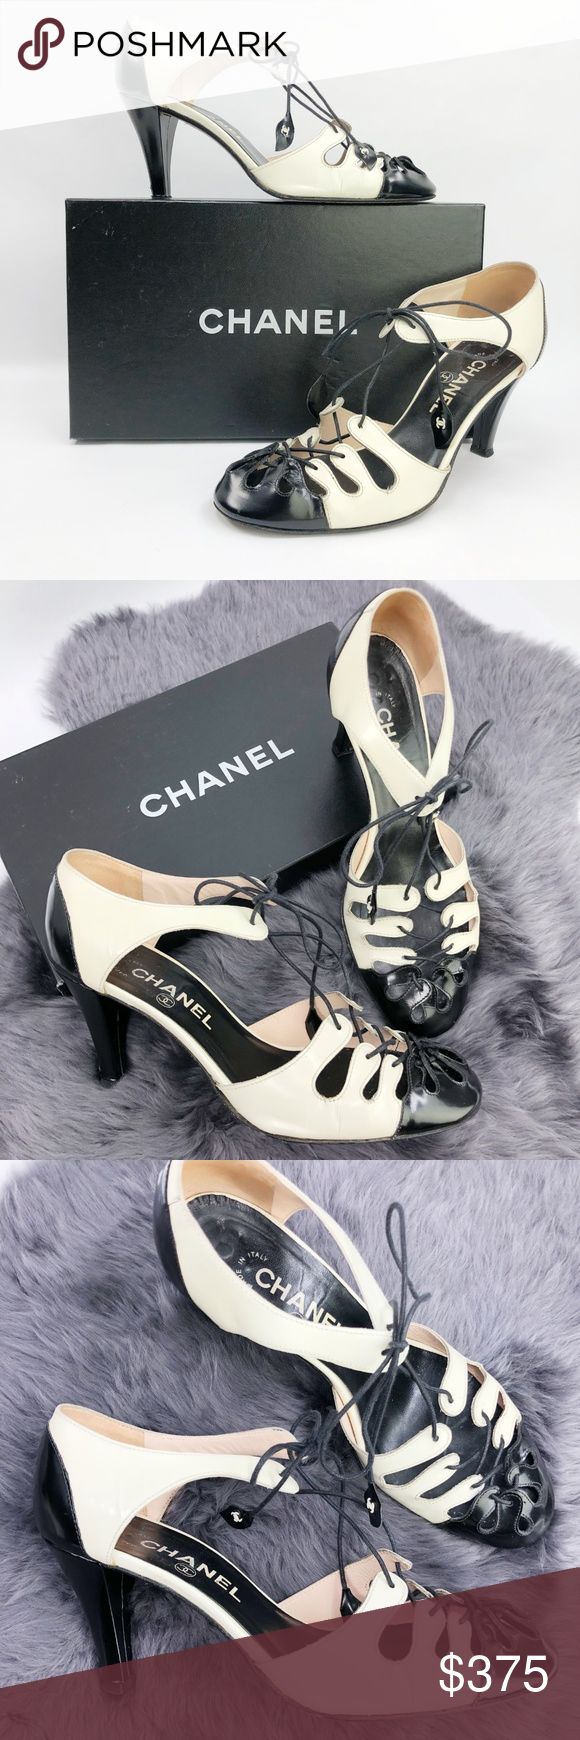 Chanel Caged Spectator Ankle Wrap Shoes Pump CC 37 Chanel Shoes Ankle Wrap Pumps... 5